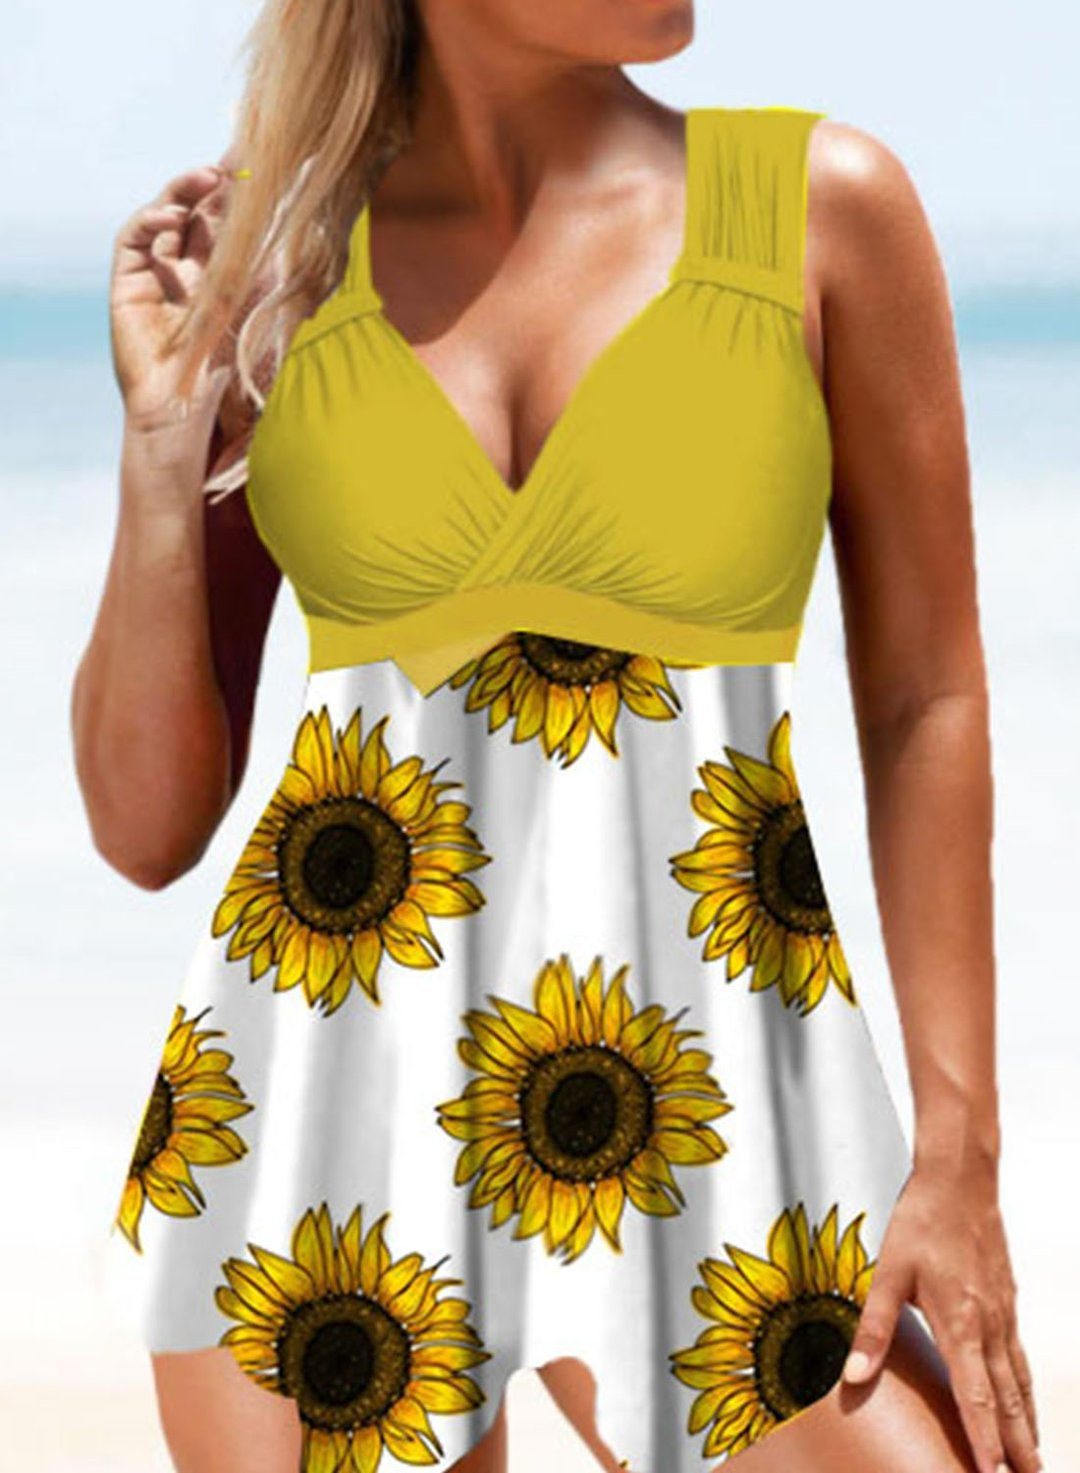 Yellow Women's One-piece Swimsuits Multicolor Sunflower V Neck Padded Casual One-piece Swimsuits LC441083-7